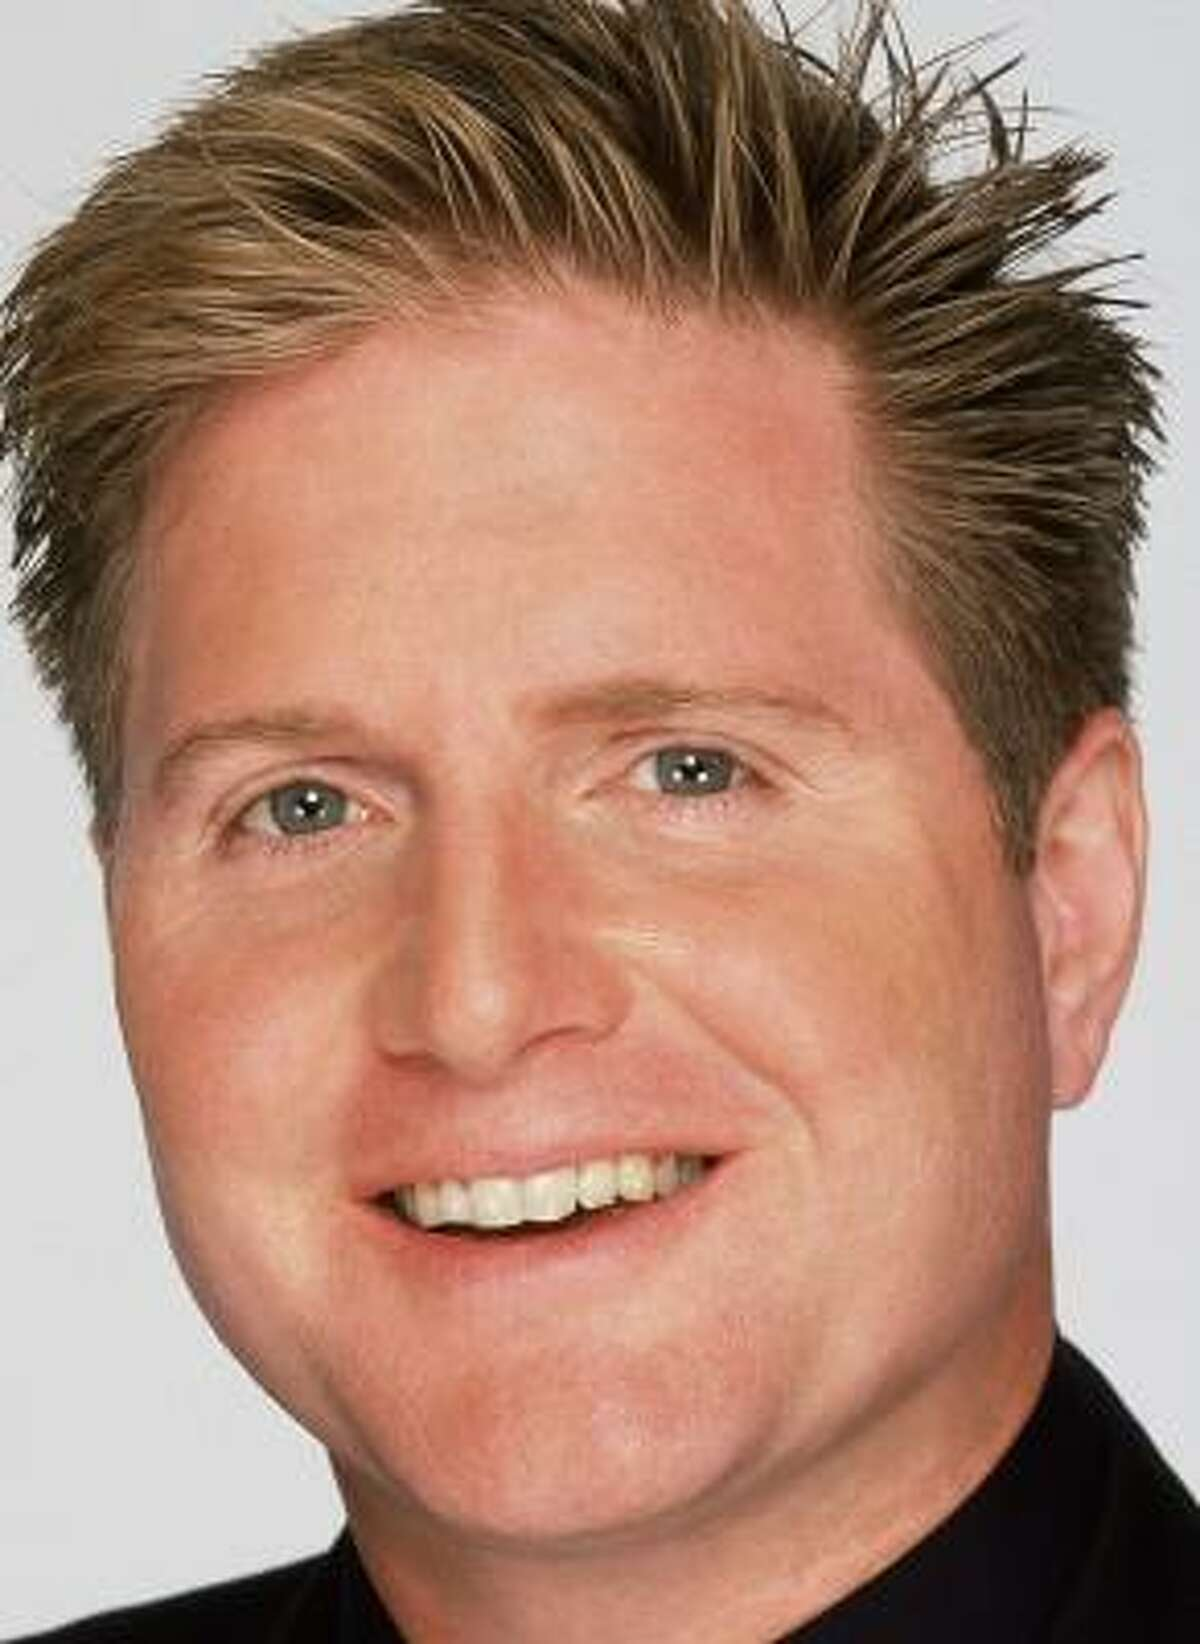 Stephen McPherson, named president of ABC Primetime Entertainment is shown in this undated publicity photo. Changes announced Tuesday streamline the decision-making process at ABC, placing control for choosing and scheduling prime-time programming with McPherson, who, as president of Touchstone Television, was already producing much of the network's schedule.